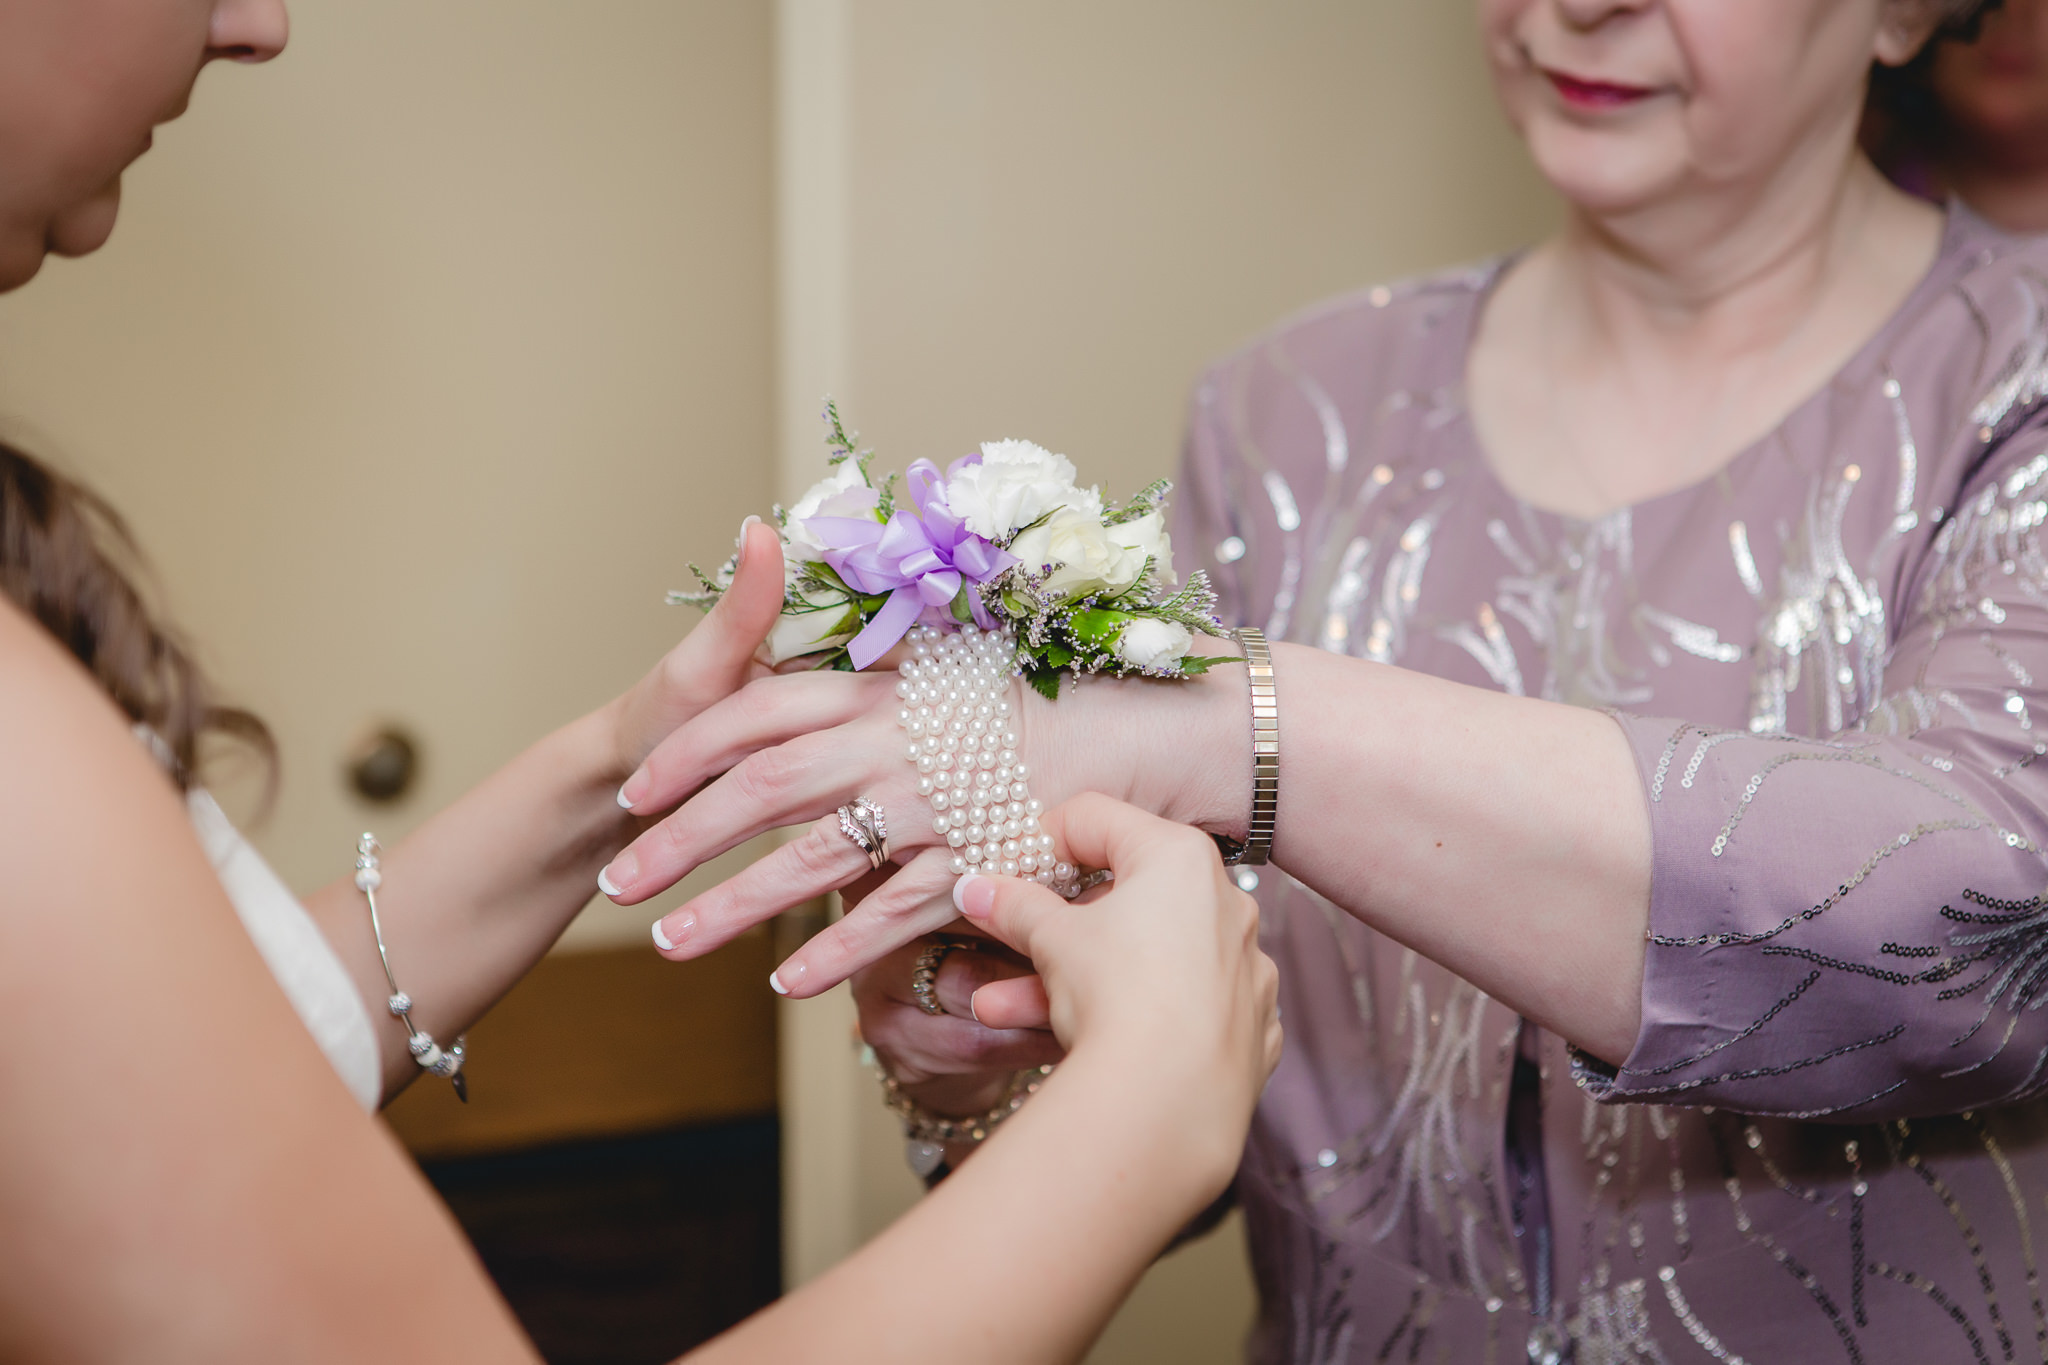 Bride puts wrist corsage on her mother's wrist